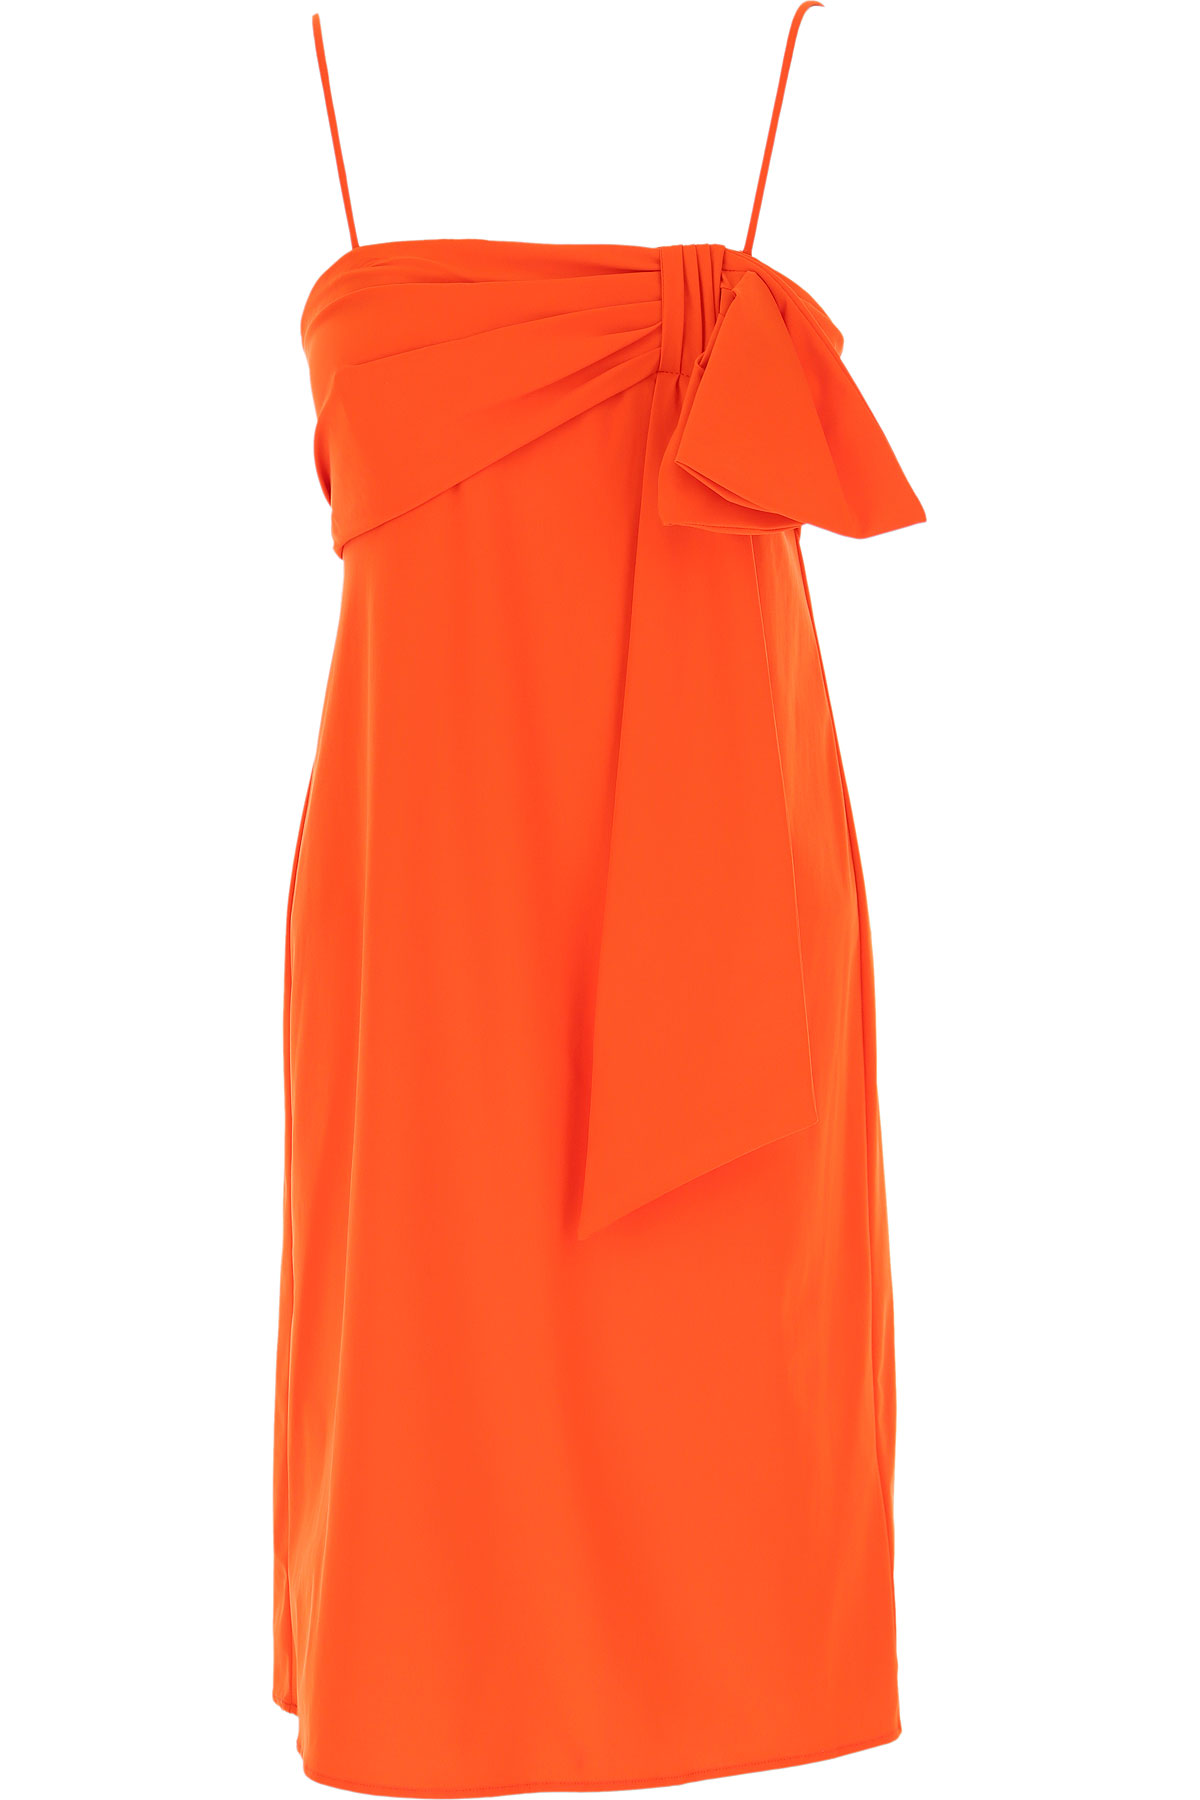 Dondup Dress for Women, Evening Cocktail Party On Sale, orange Fluo, polyamide, 2019, 4 6